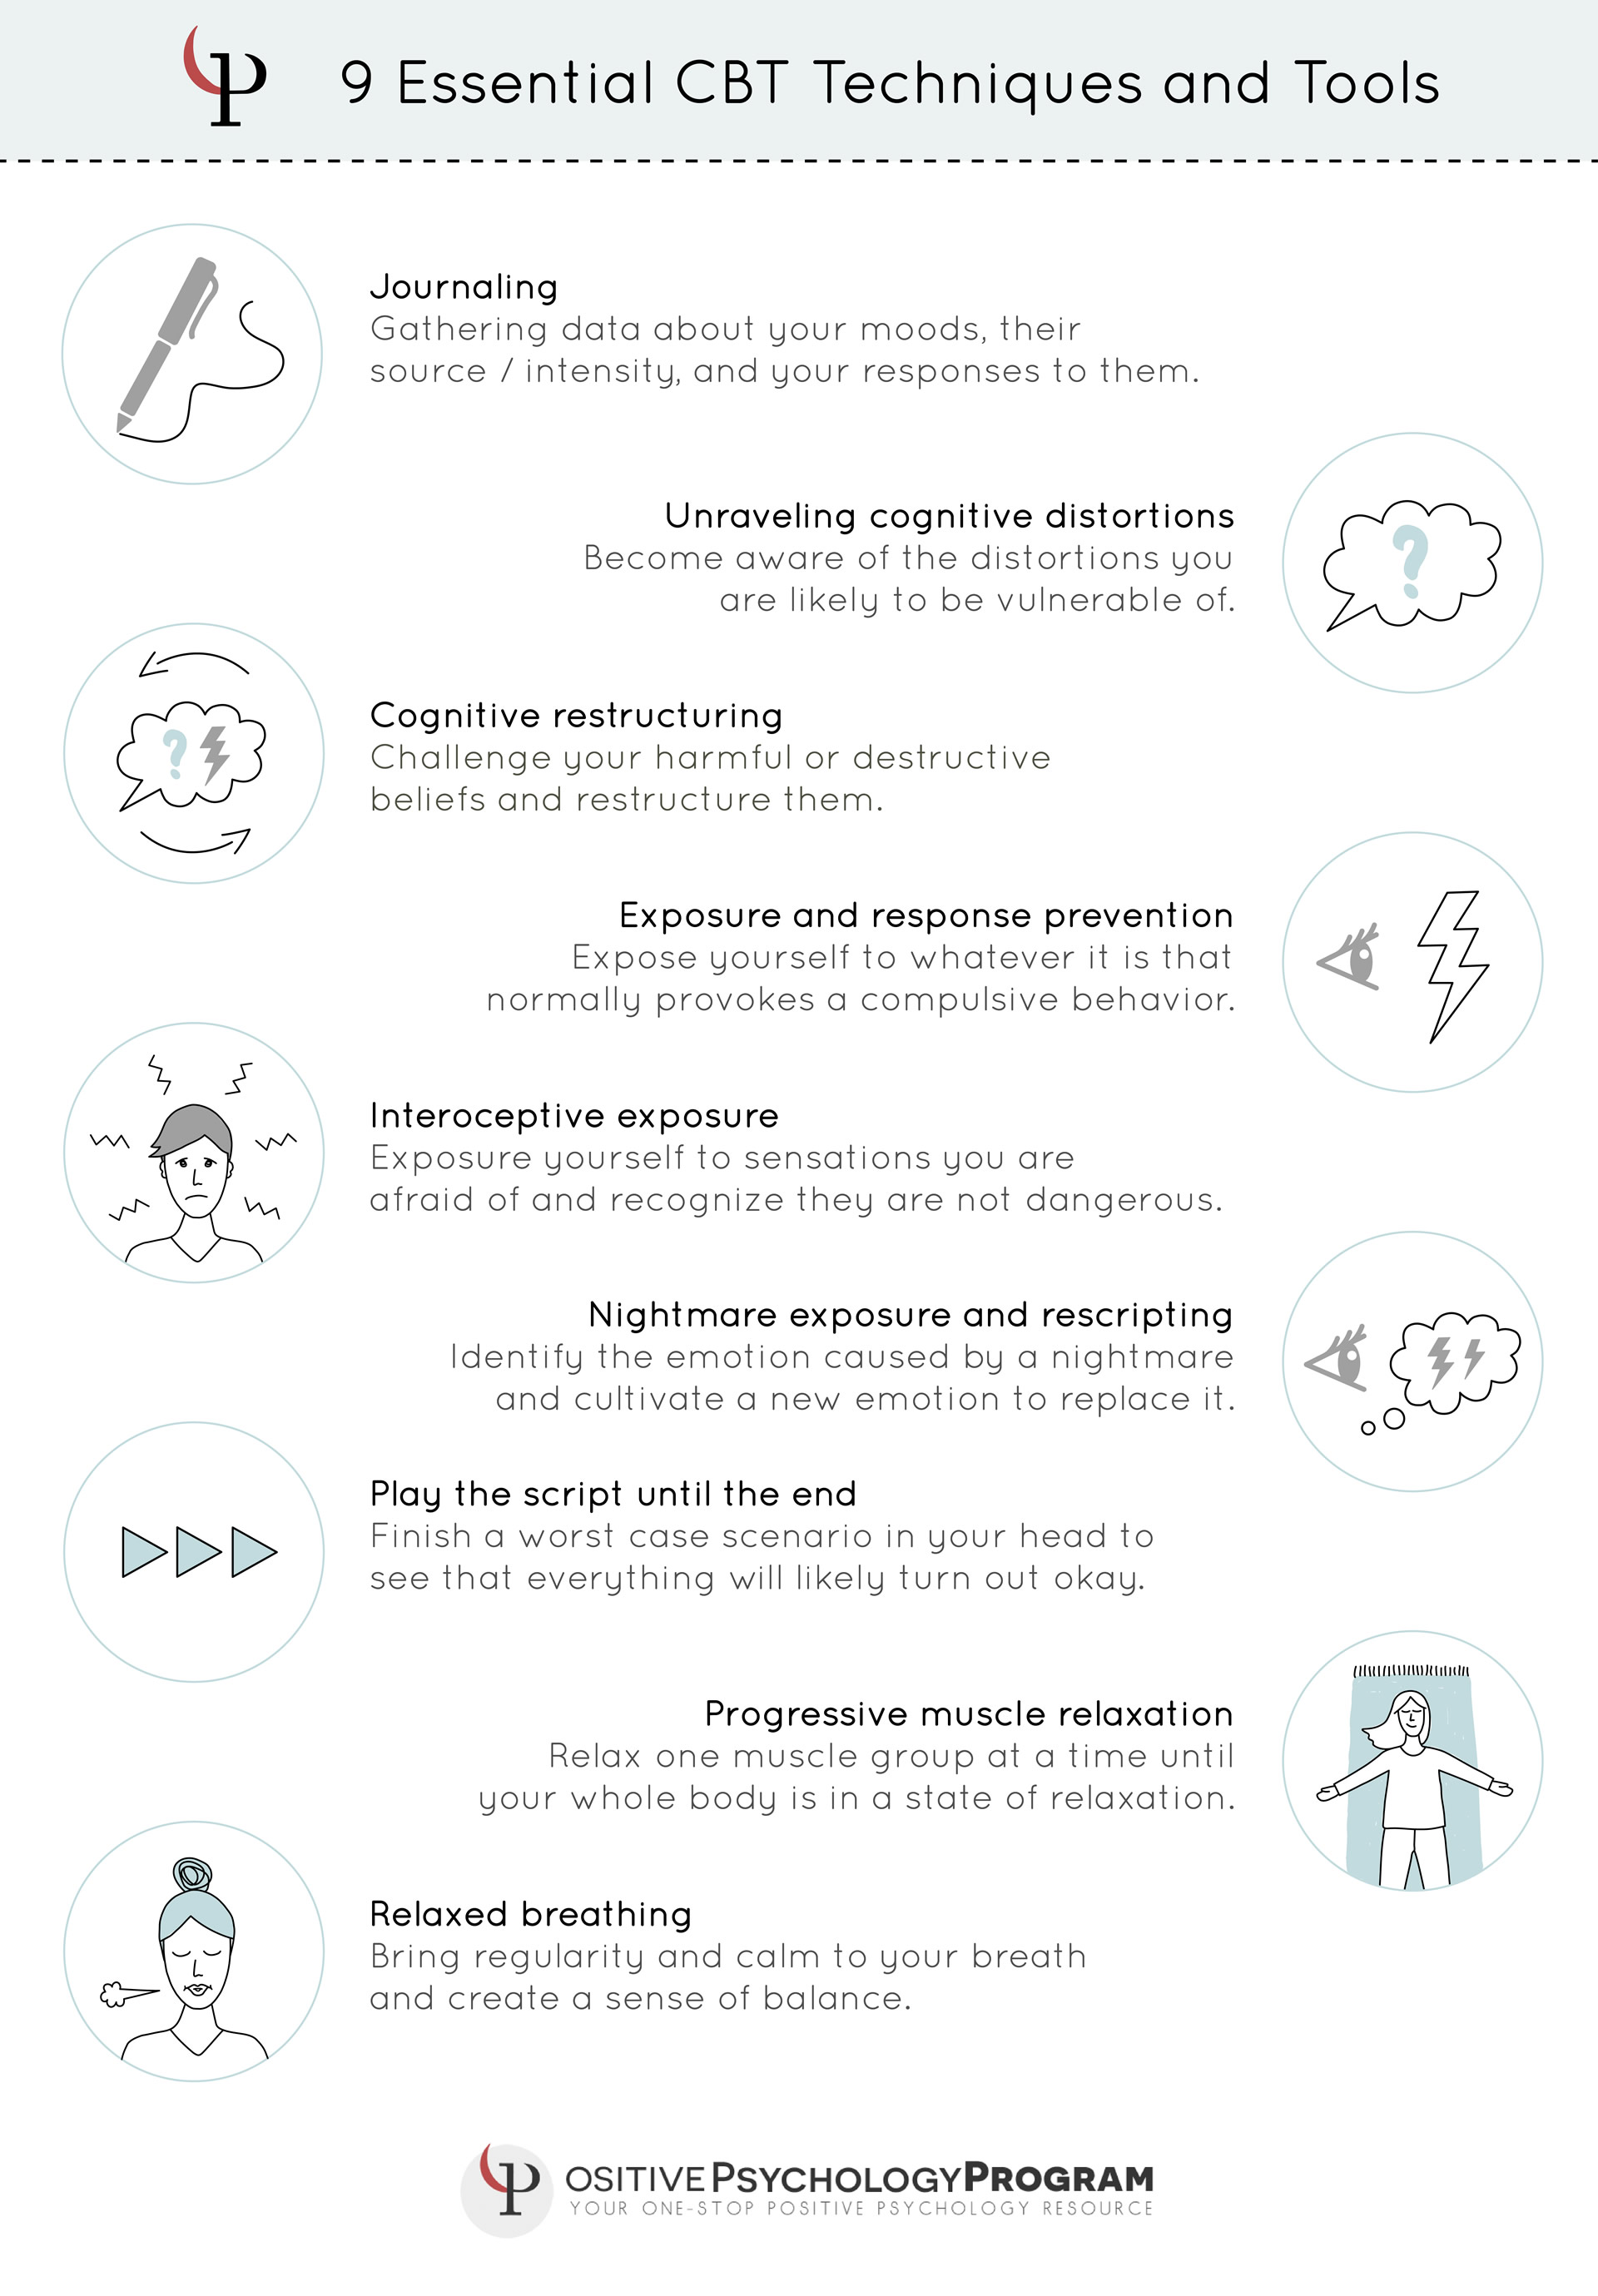 Worksheets Positive Behavior Worksheets 25 cbt techniques and worksheets for cognitive behavioral therapy 9 essential tools infographic